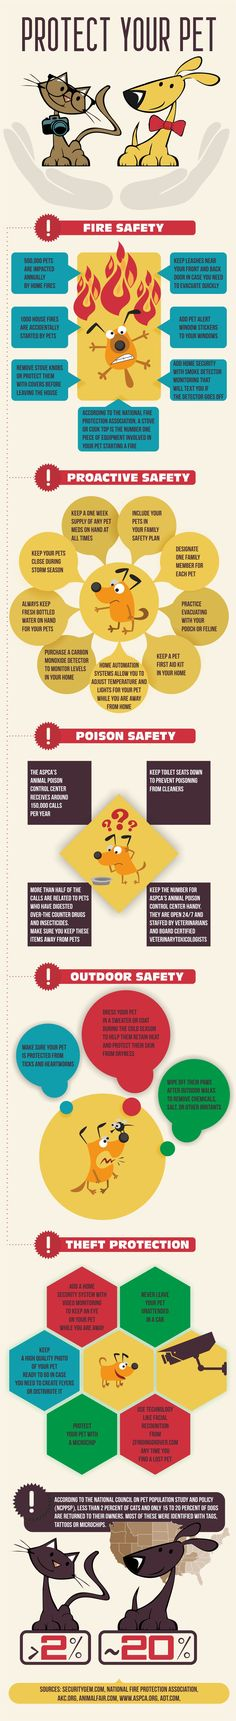 Keep your pets safe all the time! #DogHealth #ProtectDogs #DogSafety #Pets #DogTips #PetSafety